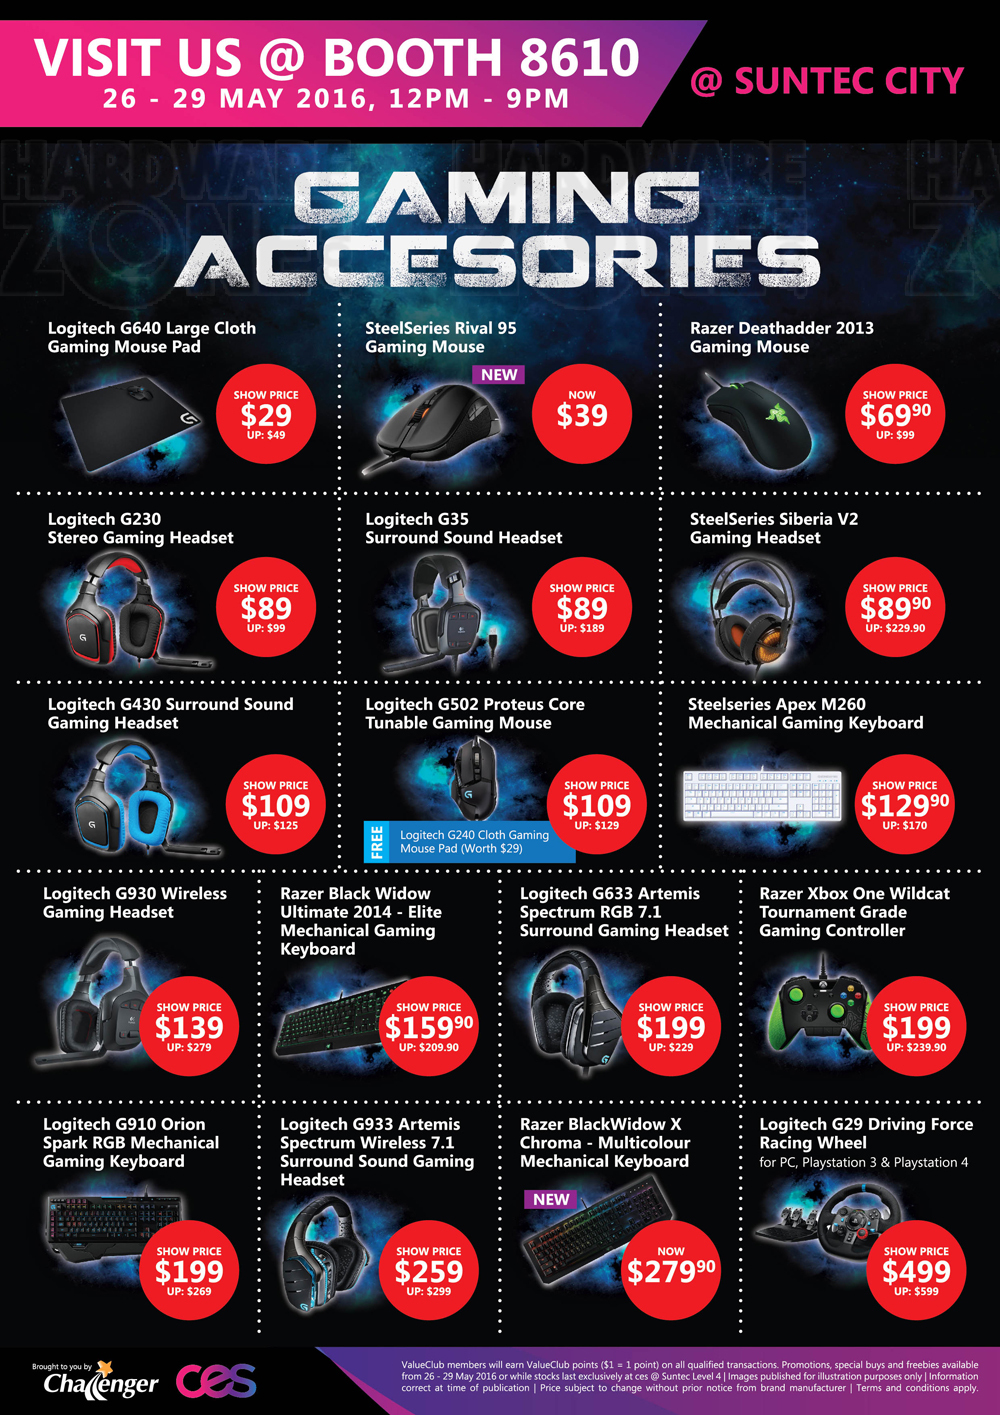 Asus gaming desktops amp monitors brochures from cee show 2016 singapore - Logitech And Razer Gaming Accessories